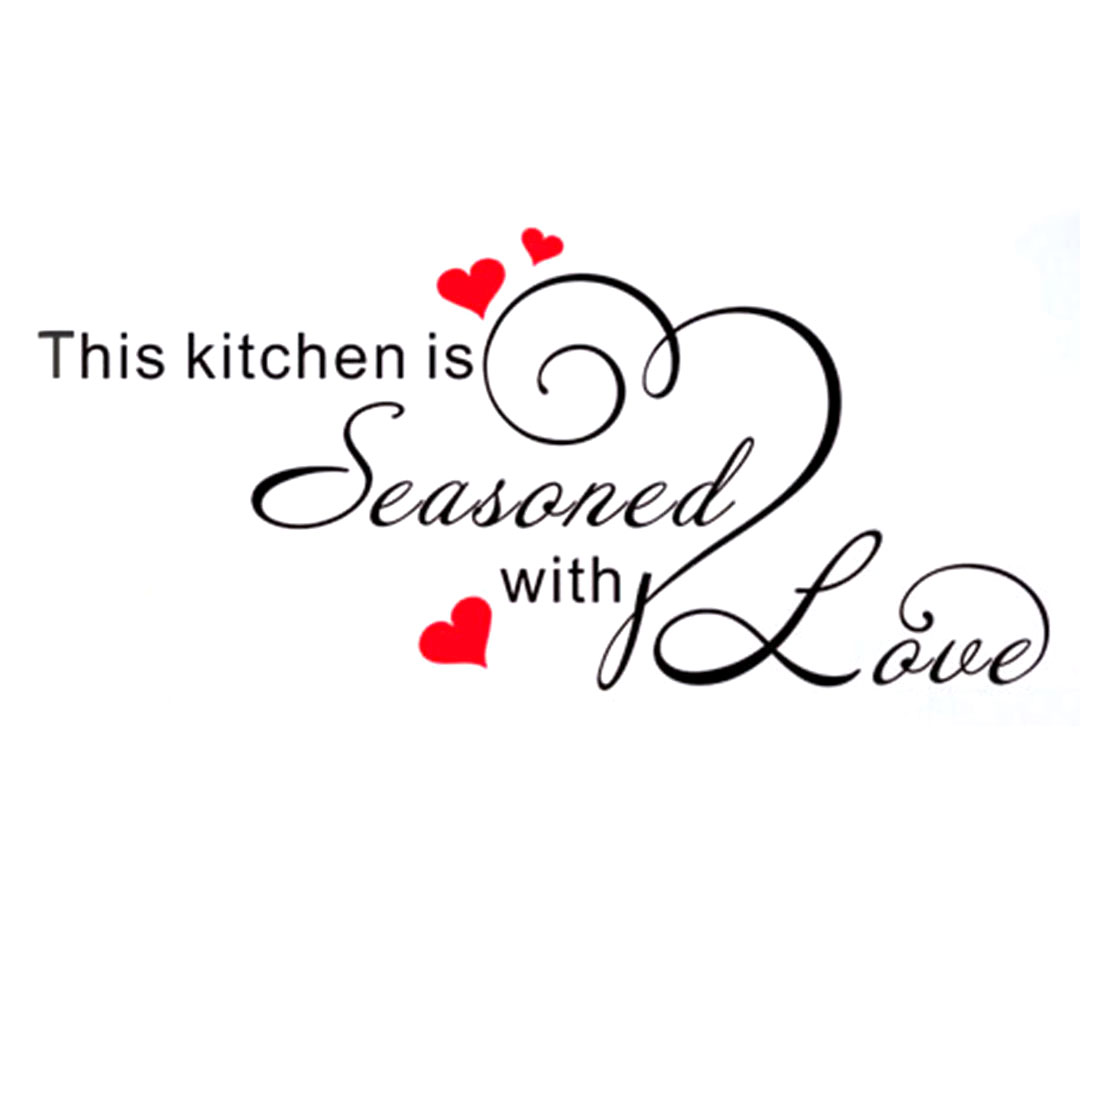 Vinyl Home Kitchen Seasoned Letter Quote Removable Wall Art Sticker Decor Mural Decal 60 x 30cm